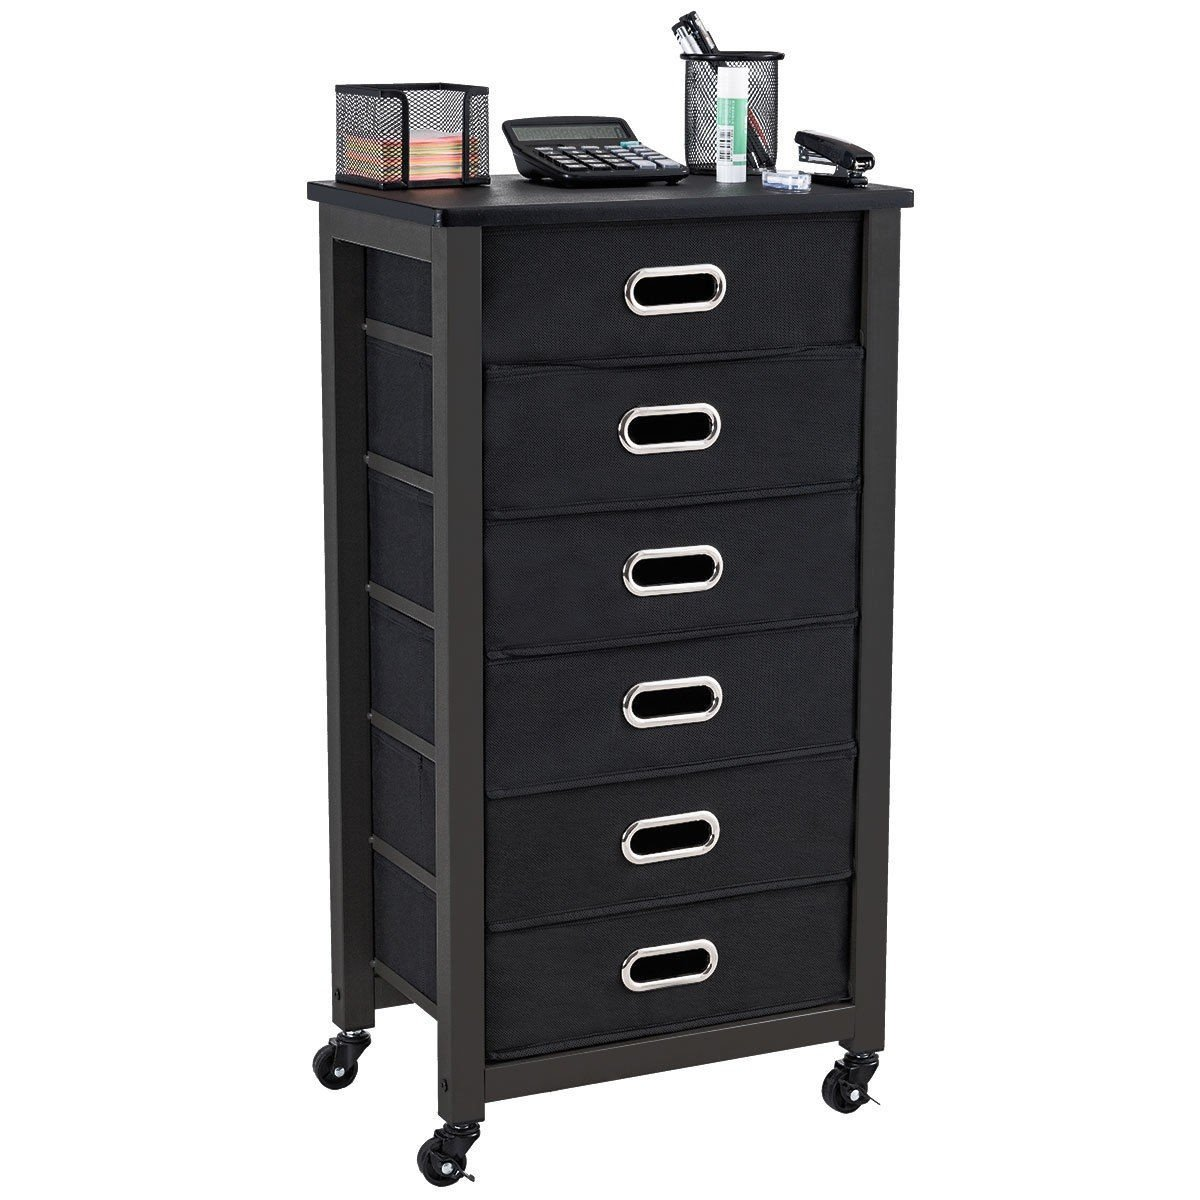 Heavy Duty Rolling Mobile Storage Filing Cabinet w/ 6 Drawers with ebook